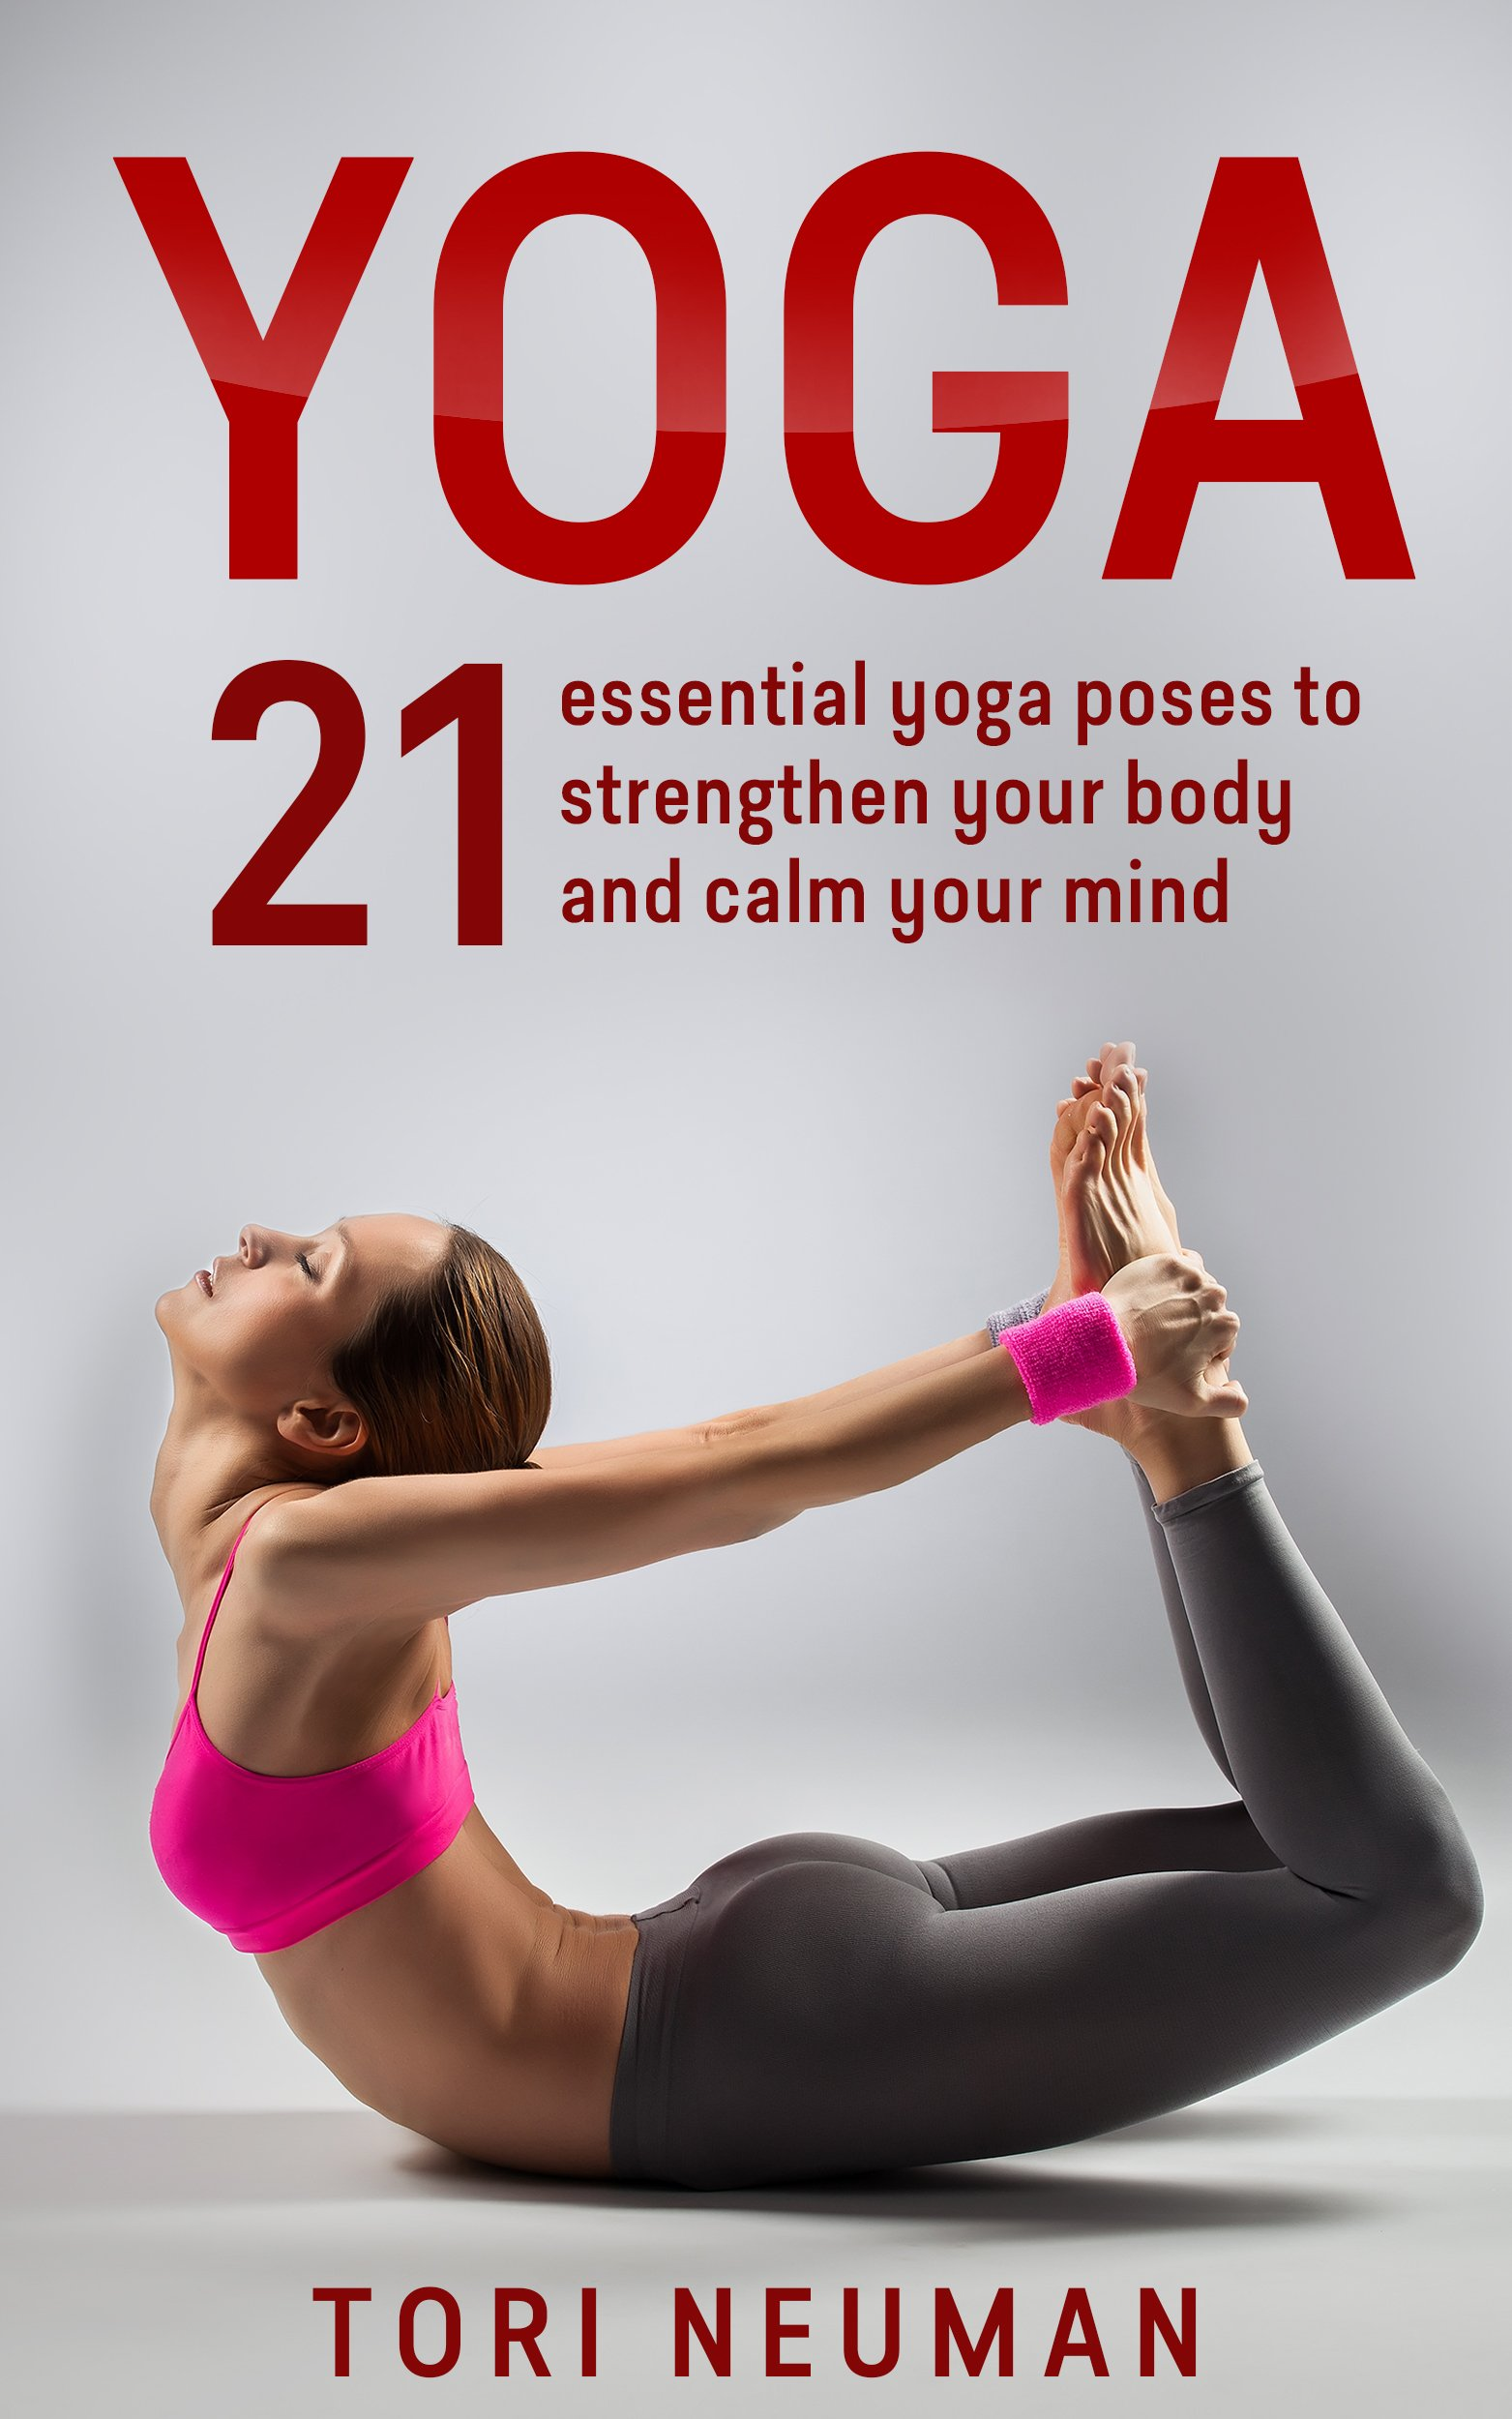 Yoga  21 Essential Yoga Poses To Strengthen Your Body And Calm Your Mind  FREE Meditation Bonus     MeditationYoga Poses Relaxation Stress ReliefYoga For Beginners   English Edition